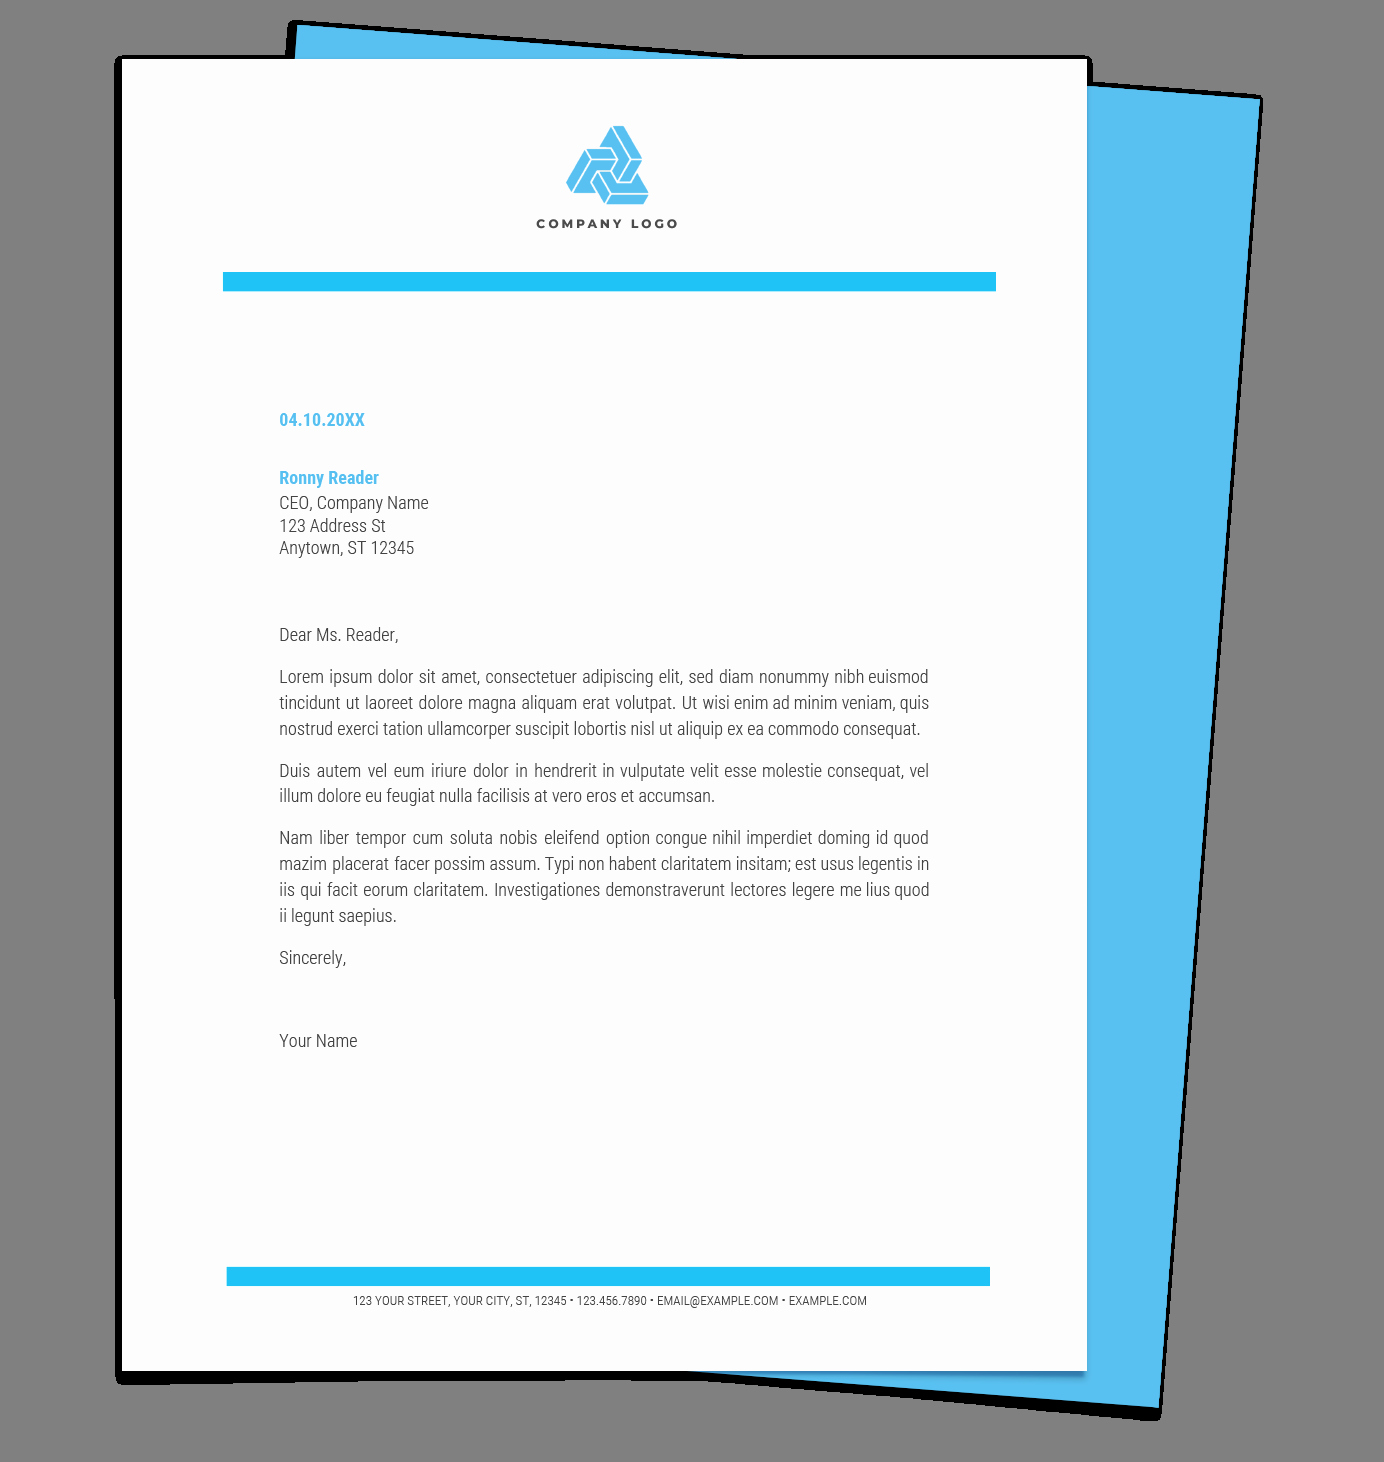 Microsoft Word Letterhead Template Elegant Free Letterhead Templates for Google Docs and Word